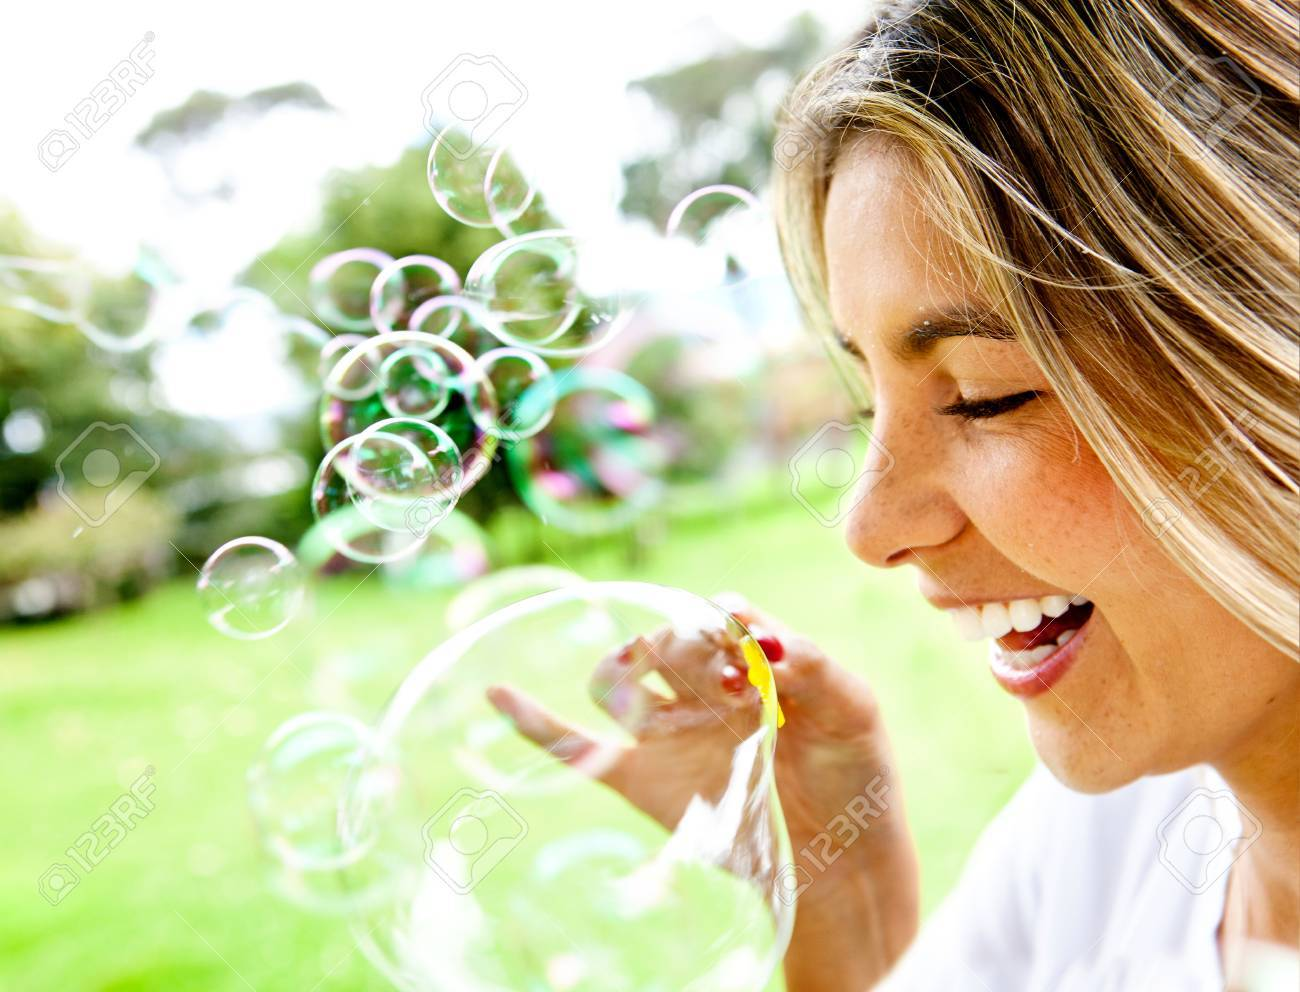 Blowing Soap Bubbles in Freezing Weather Blowing Soap Bubbles at